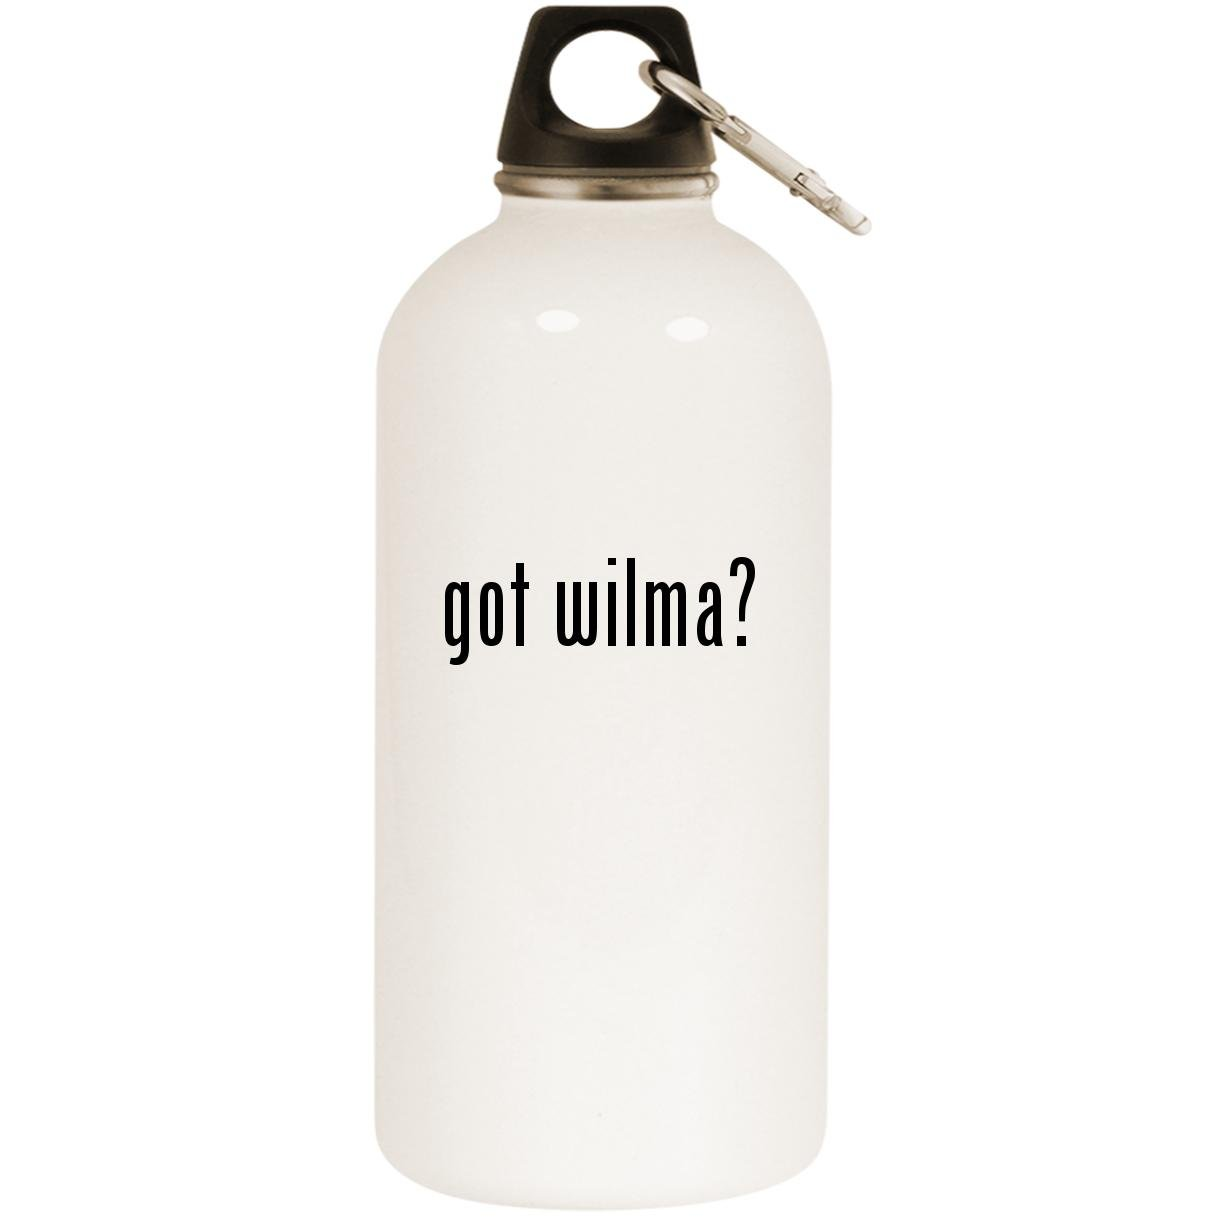 got wilma? - White 20oz Stainless Steel Water Bottle with Carabiner